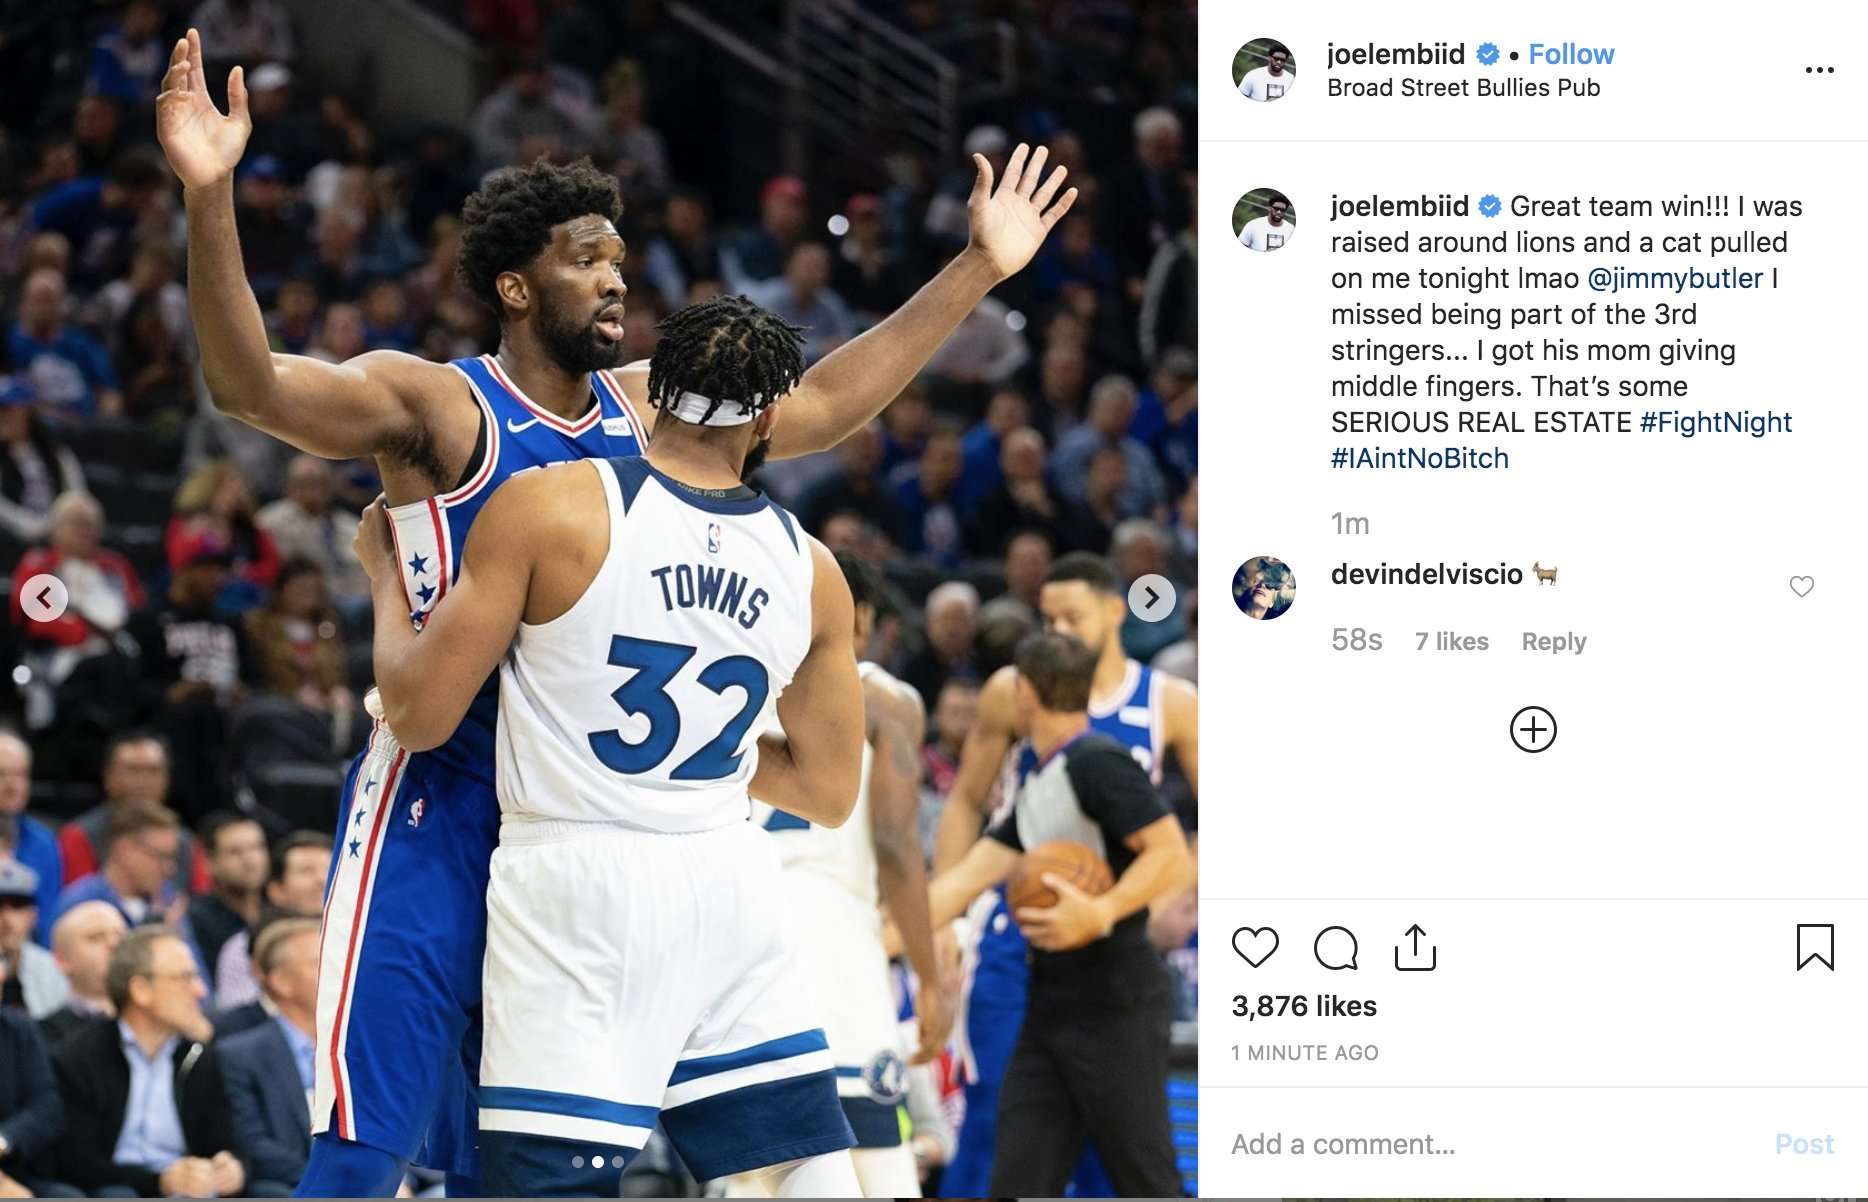 UPDATEx2: Joel Embiid Ends The Feud UPDATE: Karl Anthony Towns Responds – Joel Embiid Now Has Jimmy Butler Involved With A Fantastic Instagram Troll